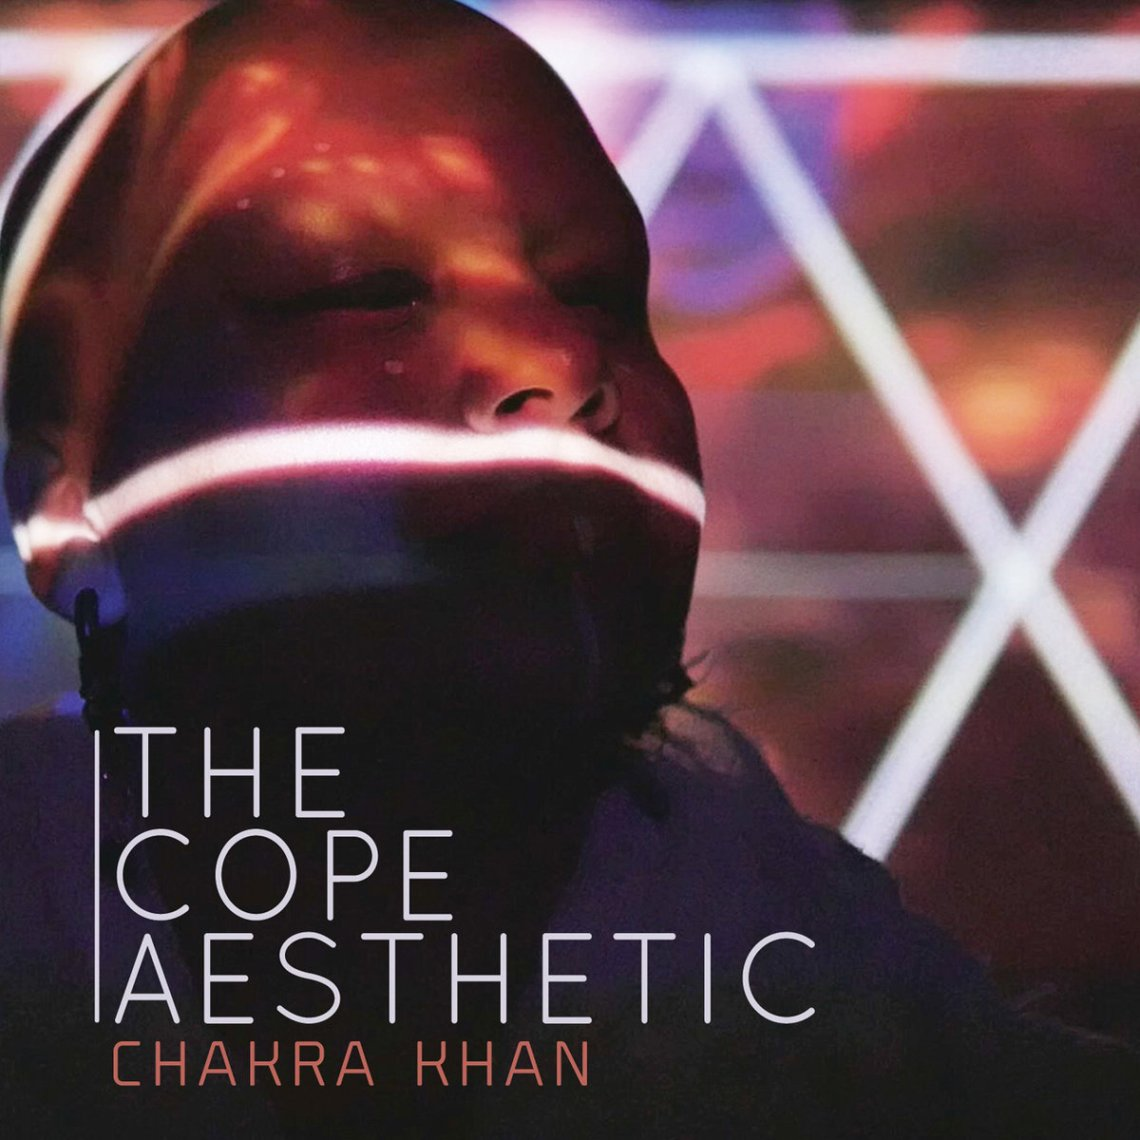 Chakra-Khan-The-Cope-Aesthetic